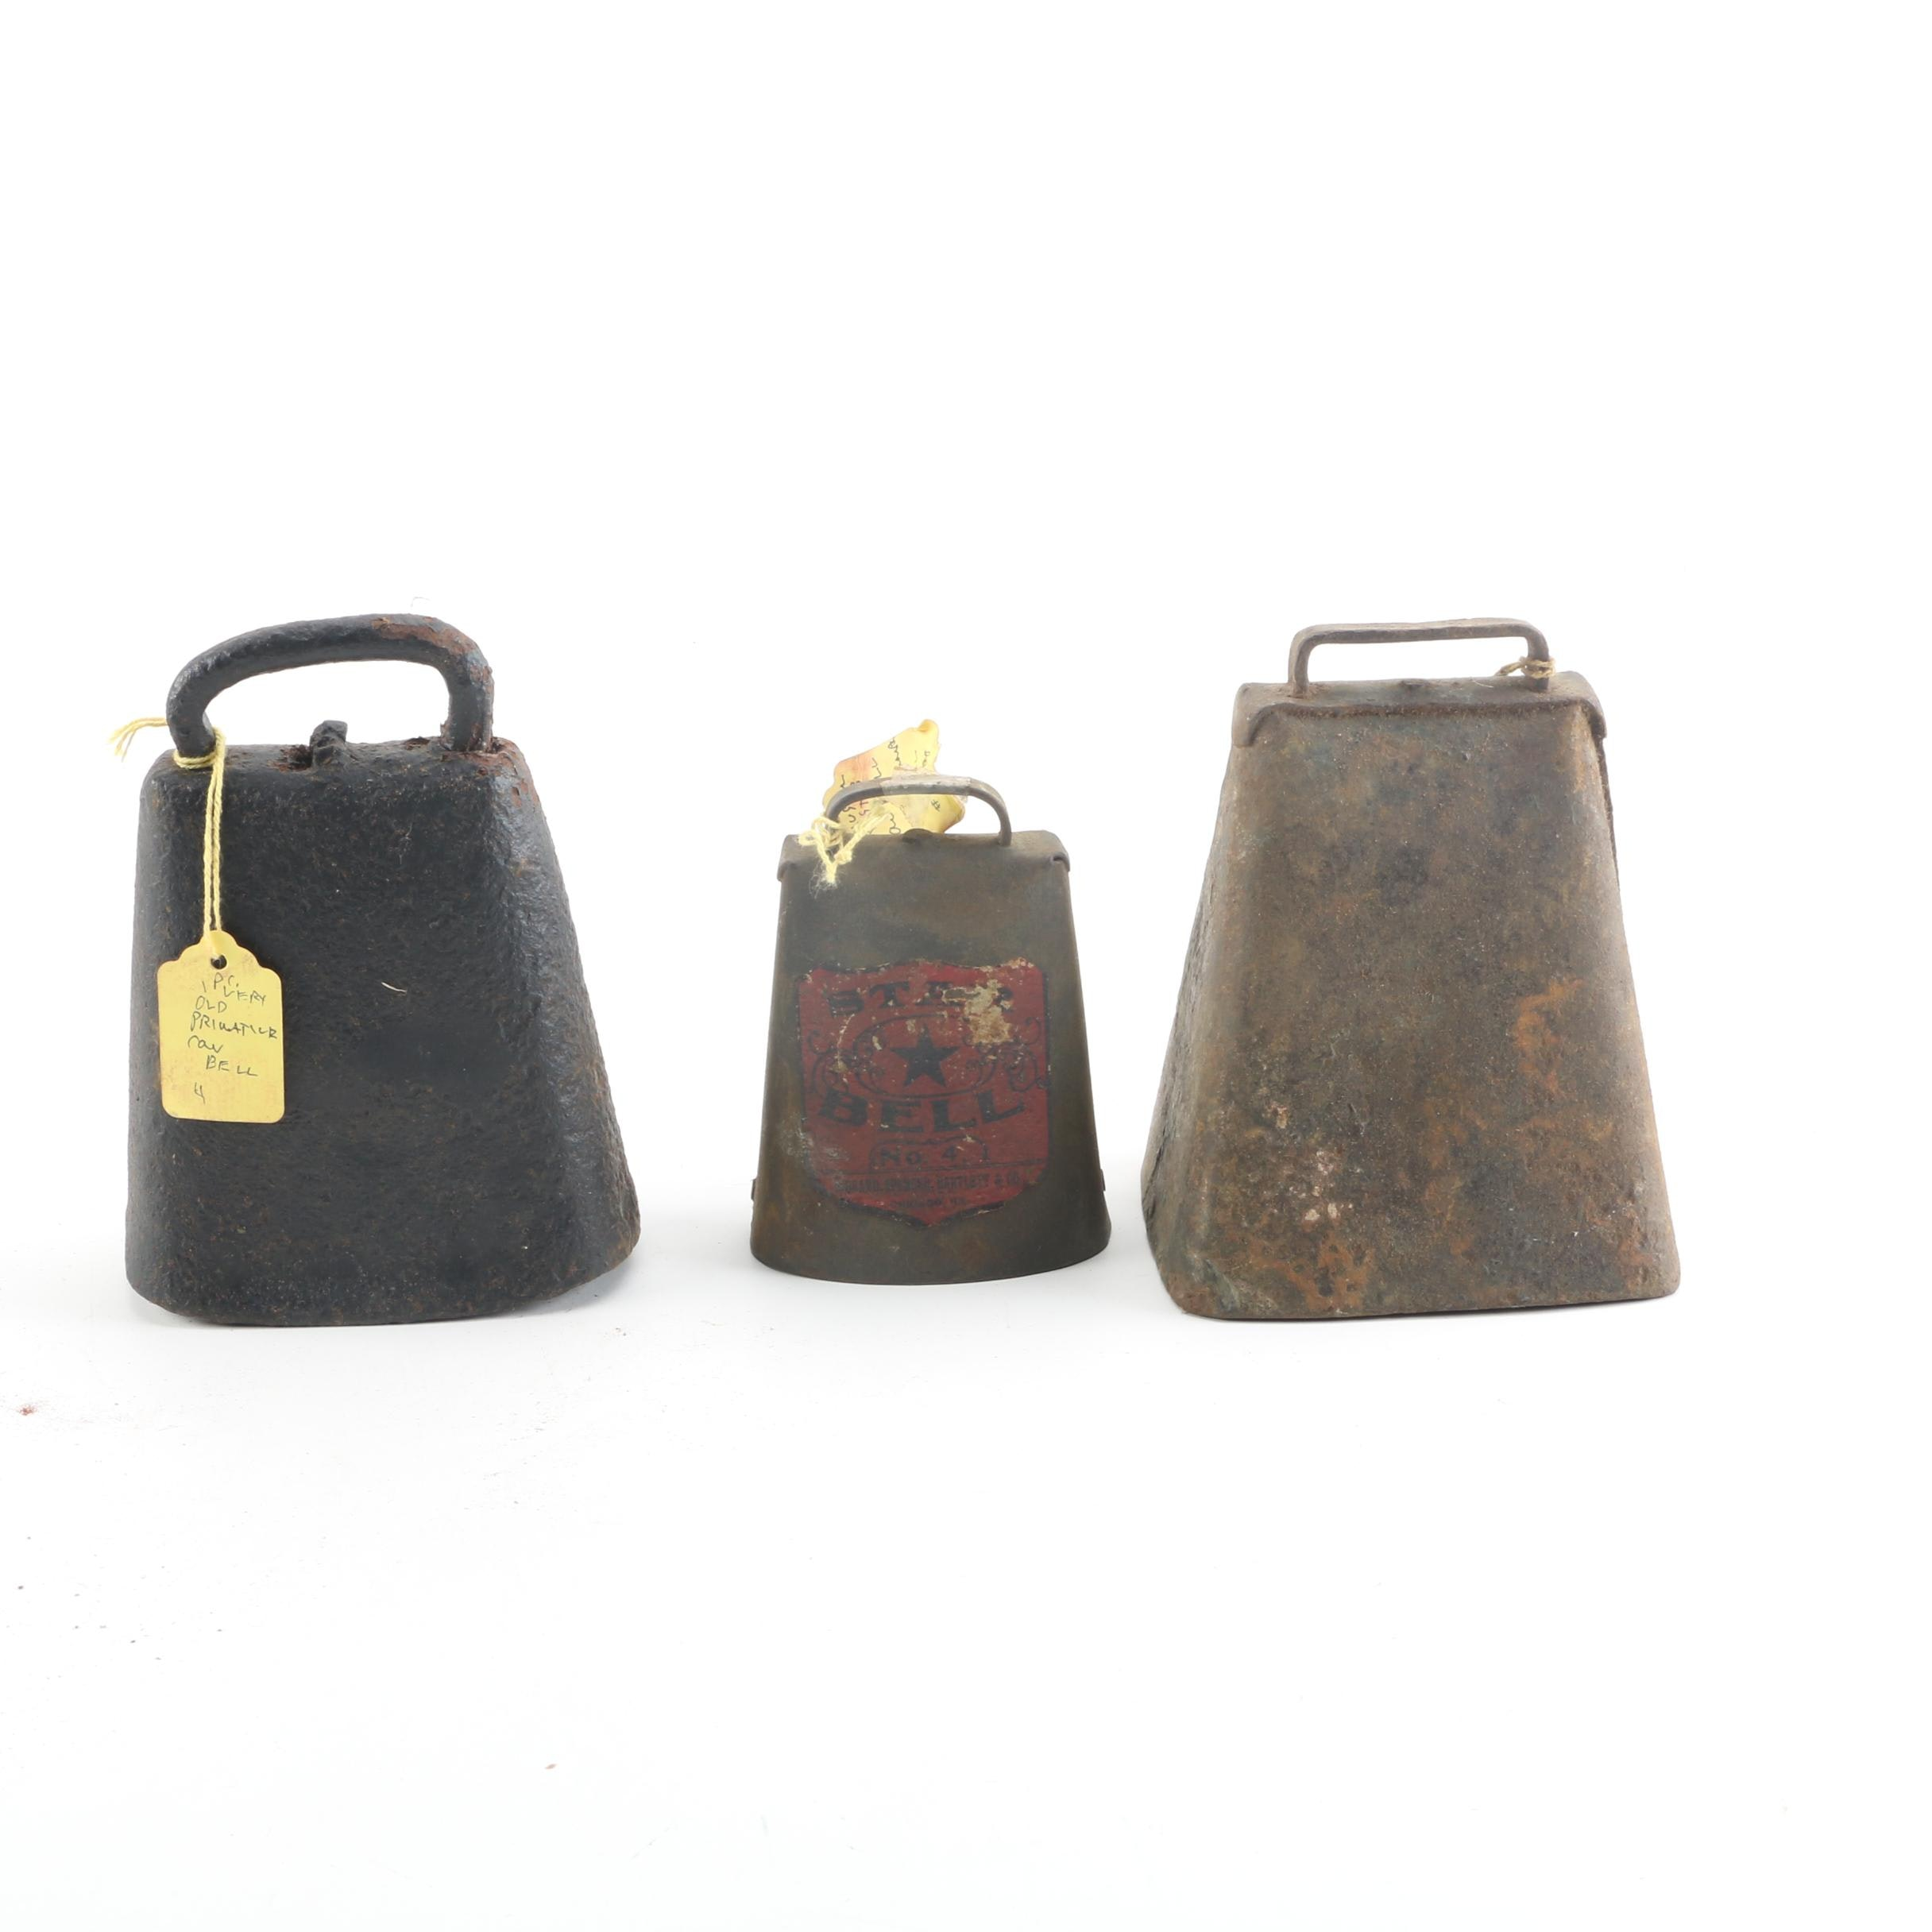 Antique Iron Cowbells